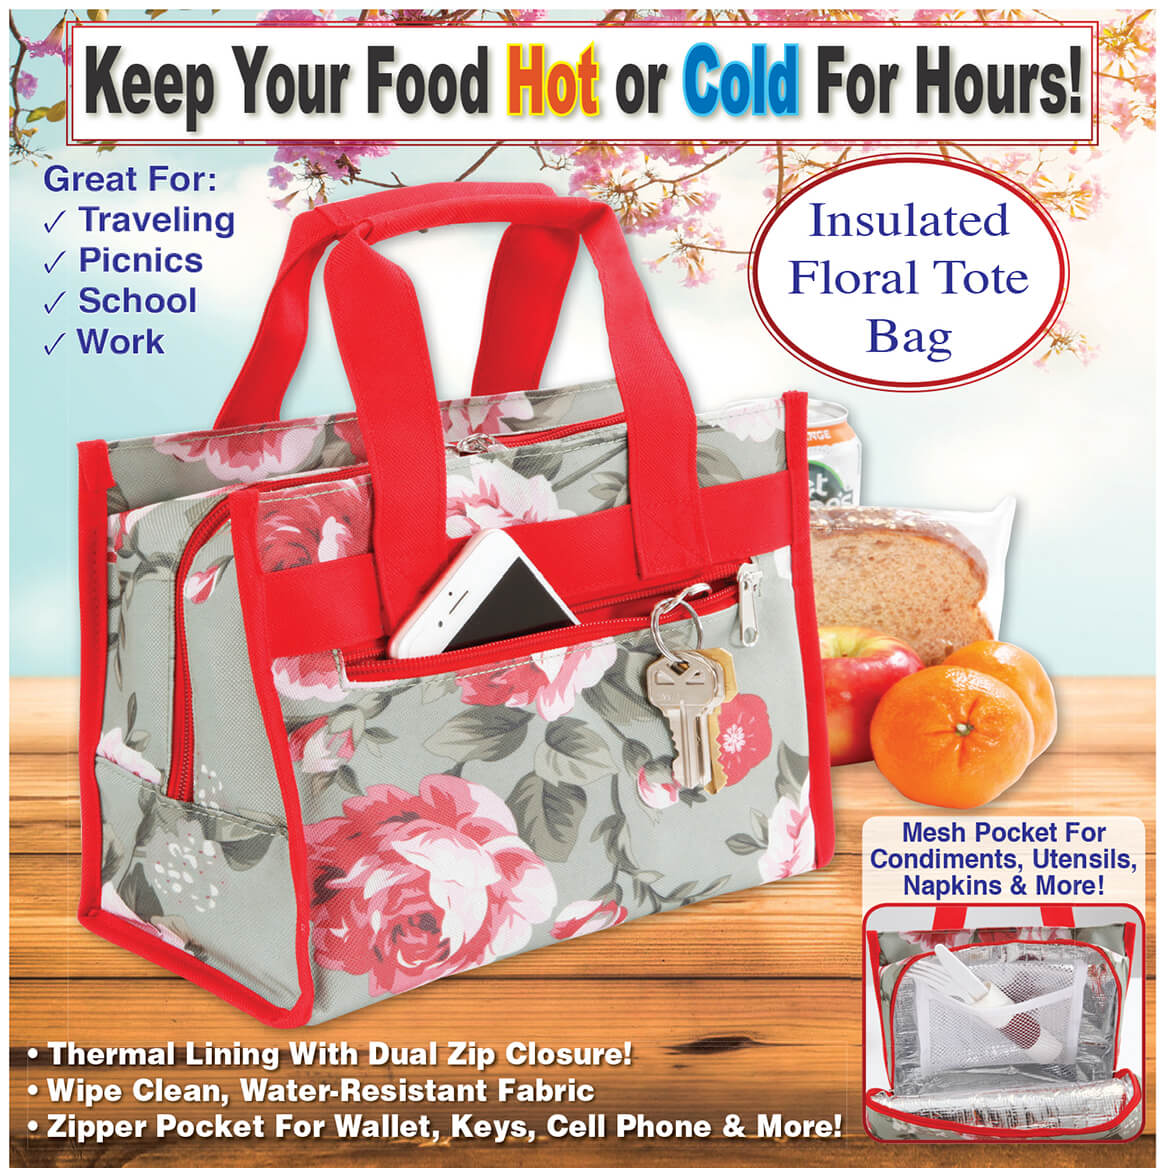 Insulated Floral Tote Bag-369769